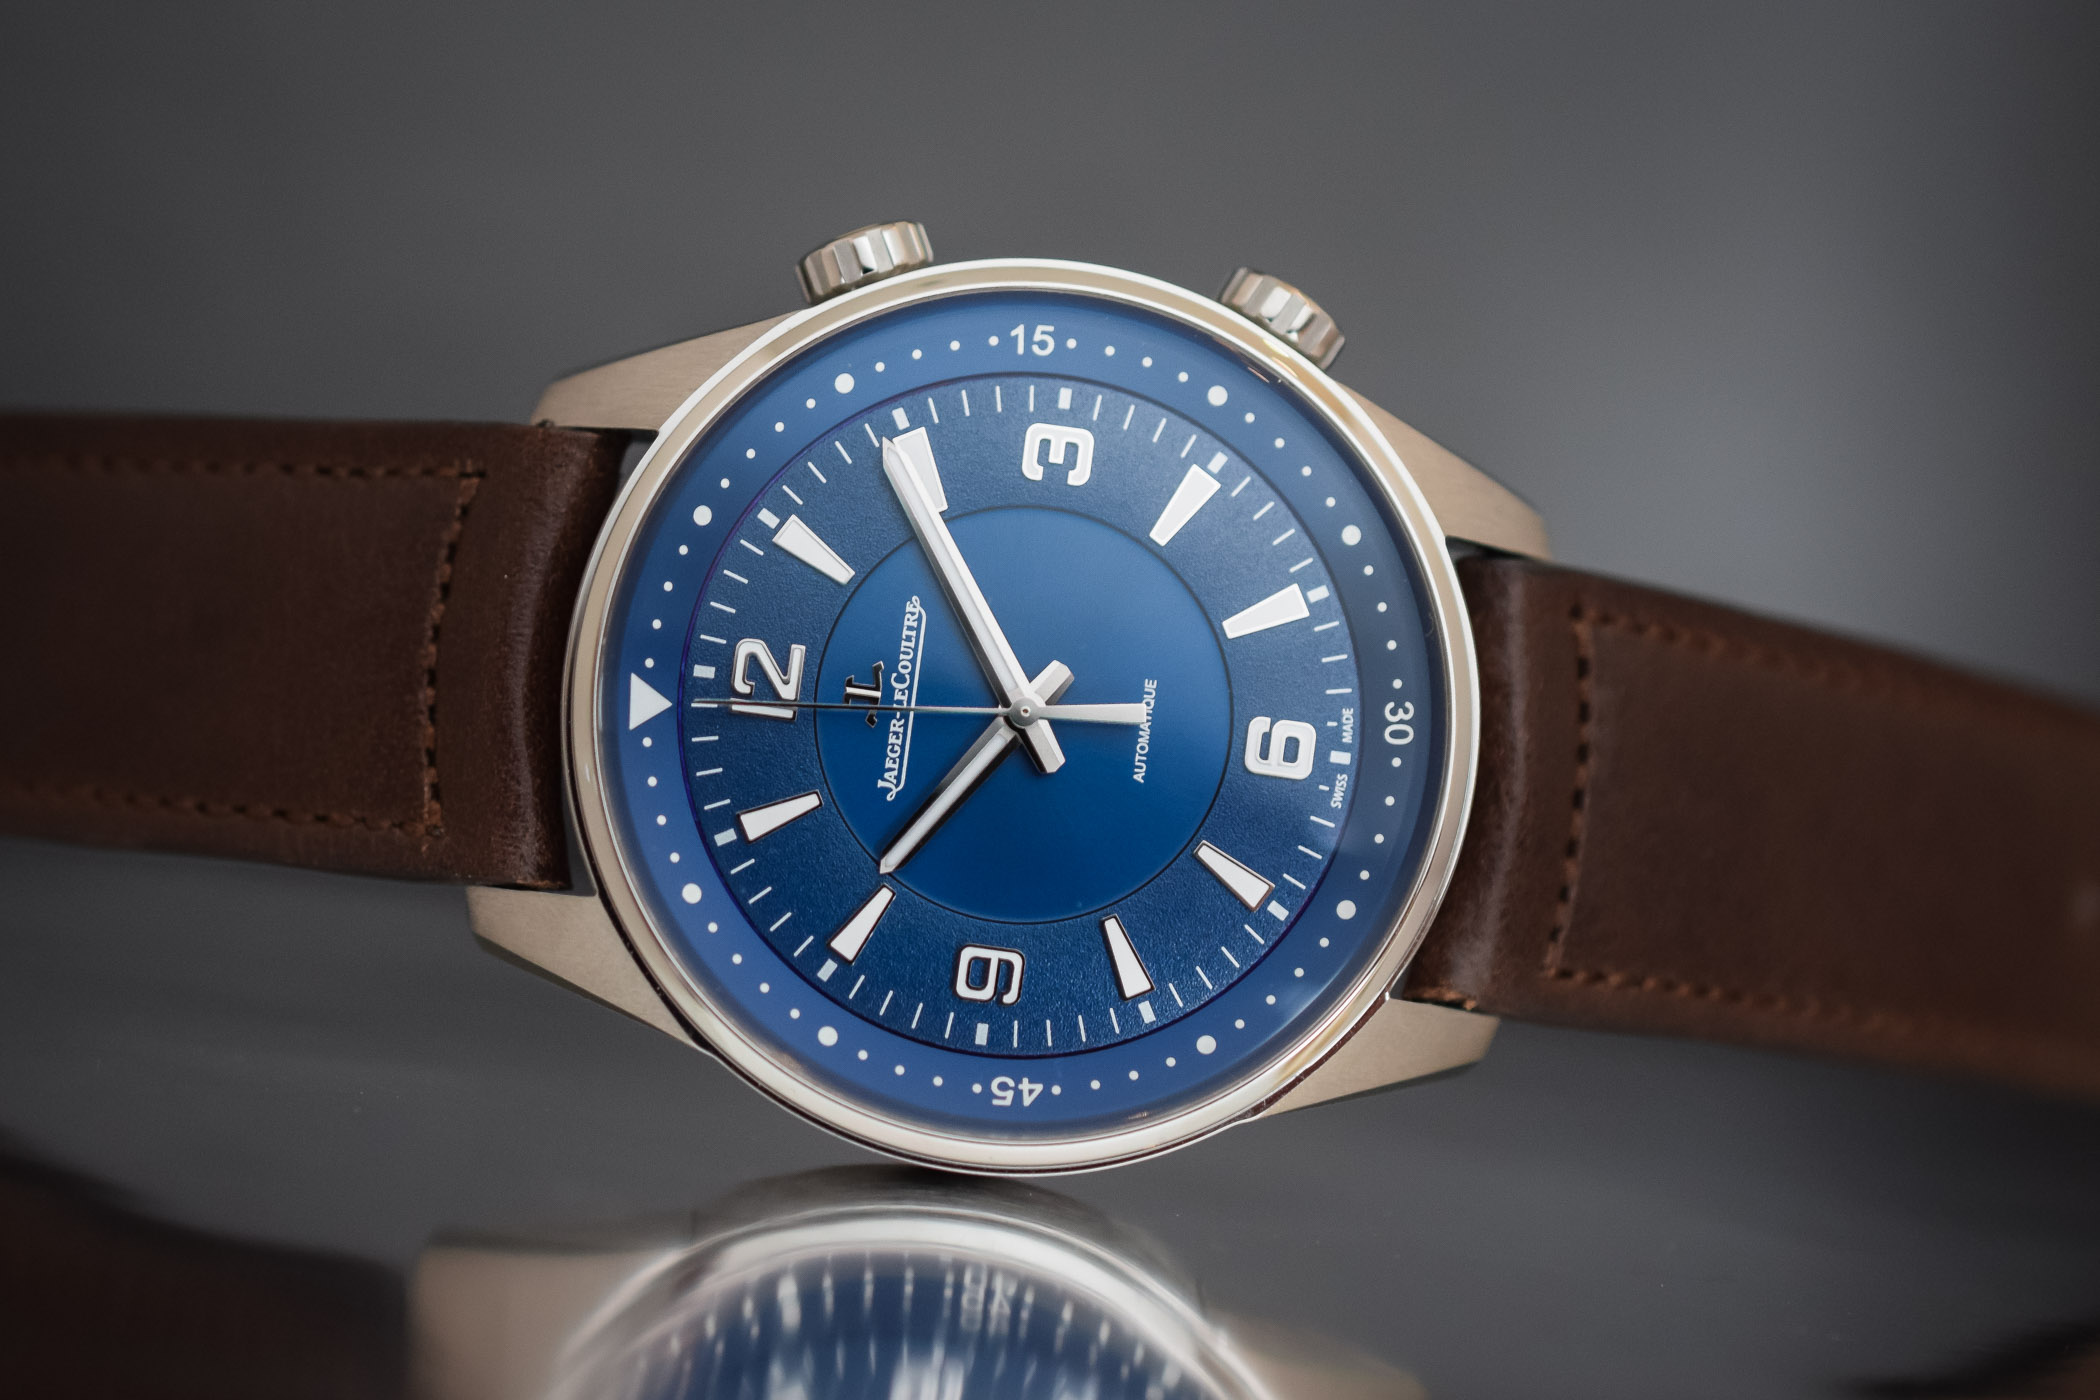 Jaeger-LeCoultre Polaris Automatic 2018 blue